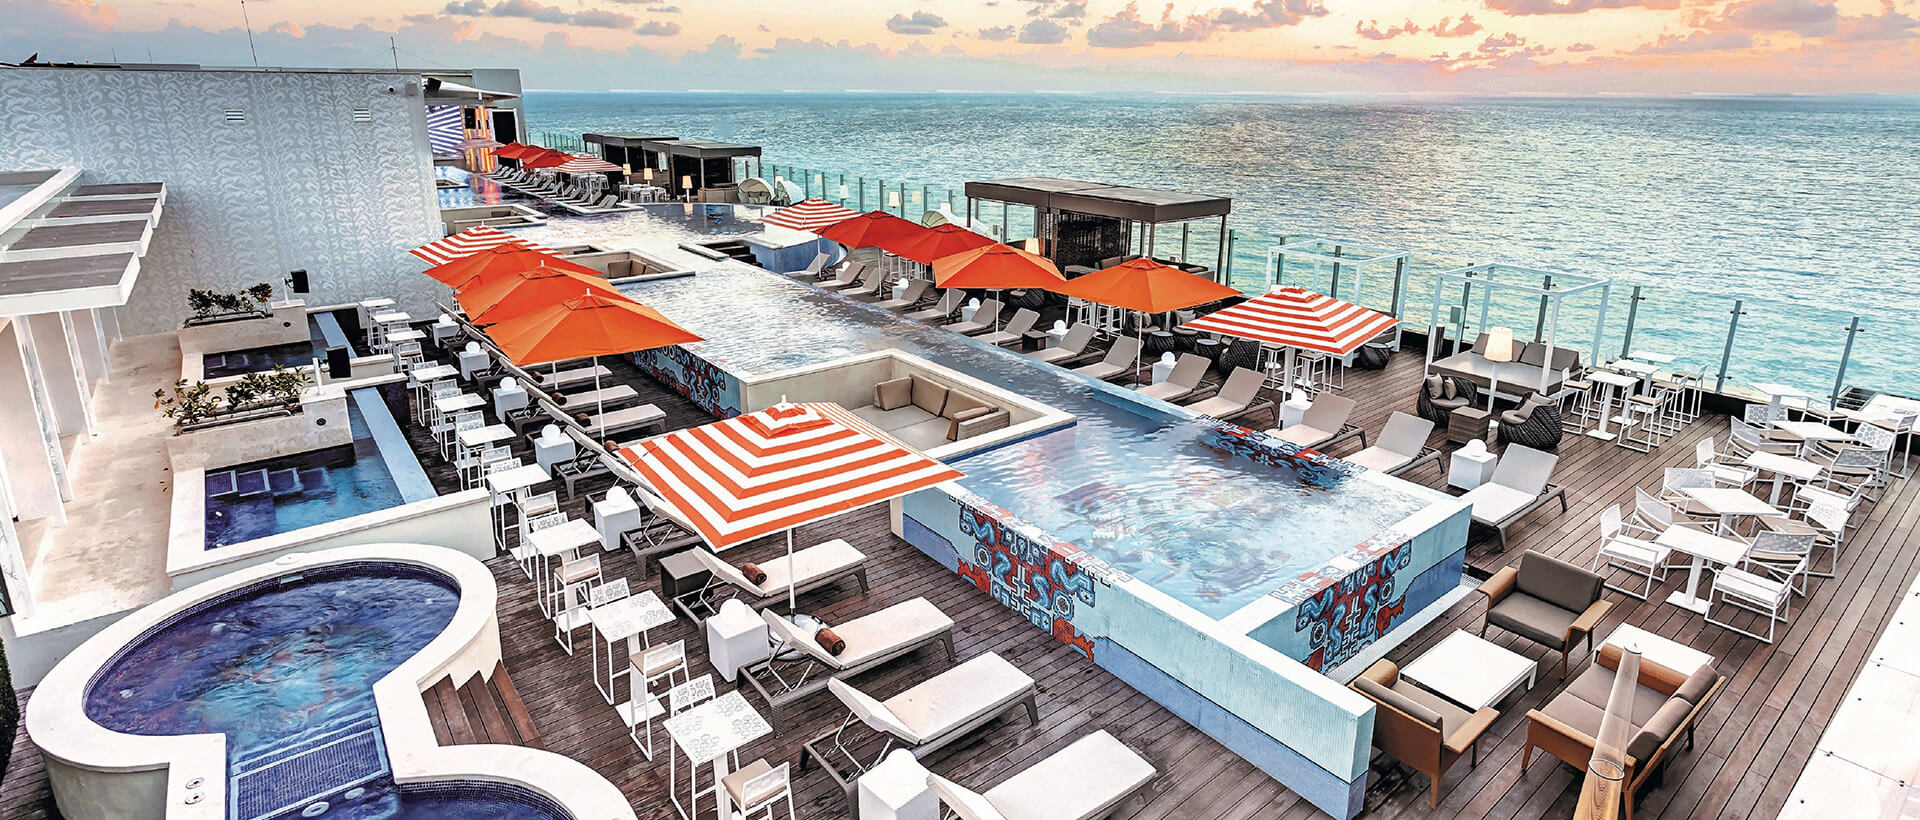 Royalton CHIC Cancun, An Autograph Collection All-Inclusive Resort & Casino - Adults Only